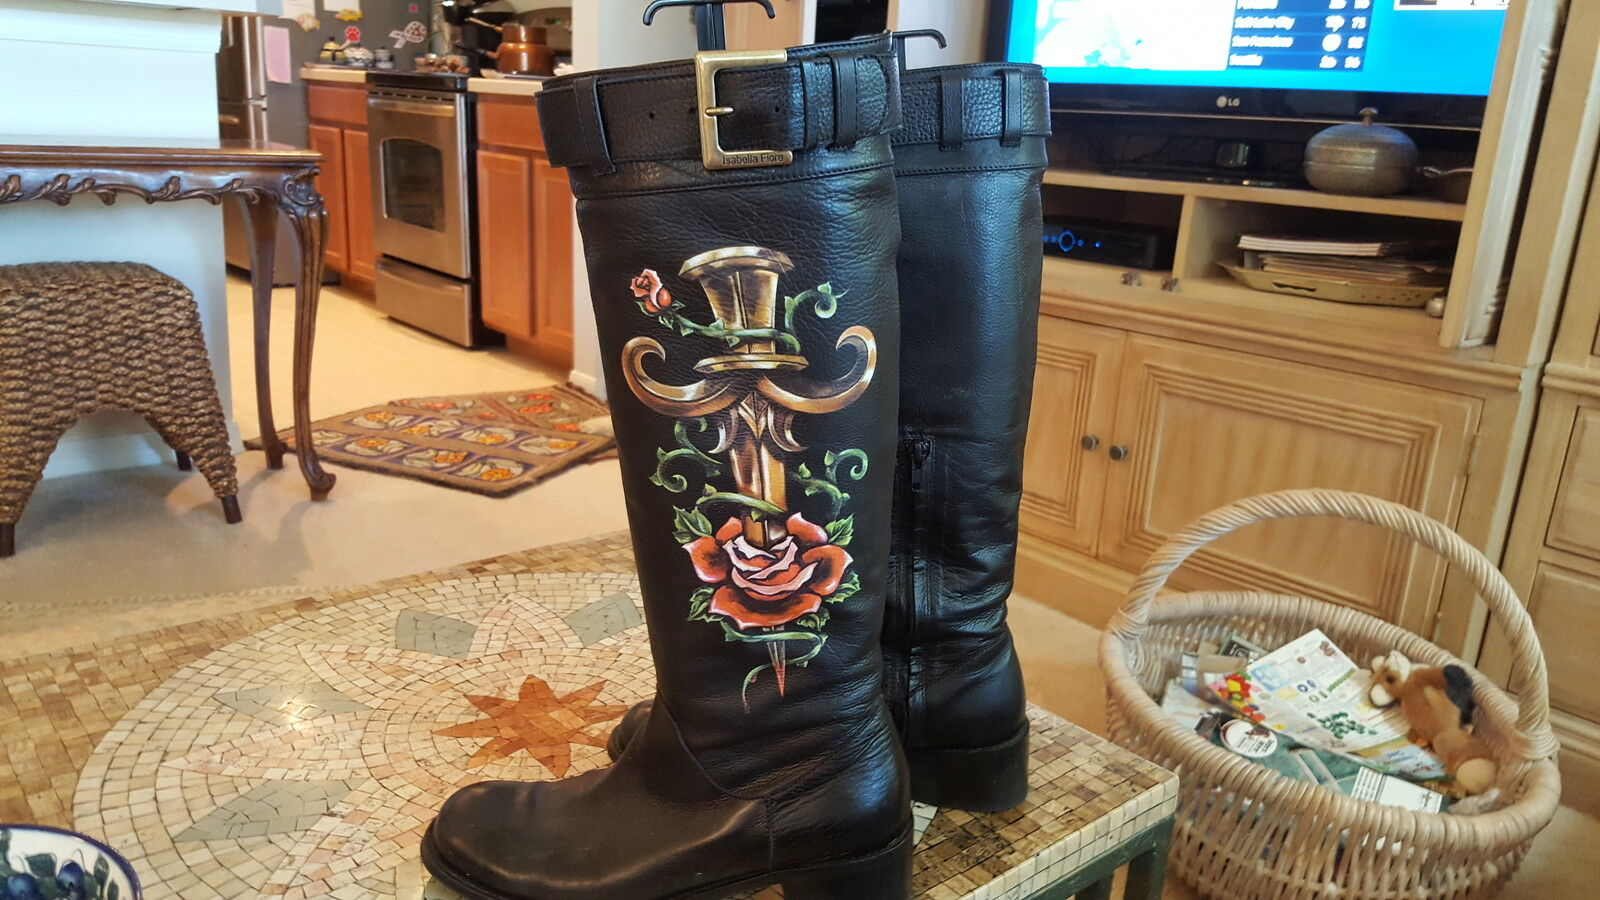 Isabella Fiore Ed Hardy design boots